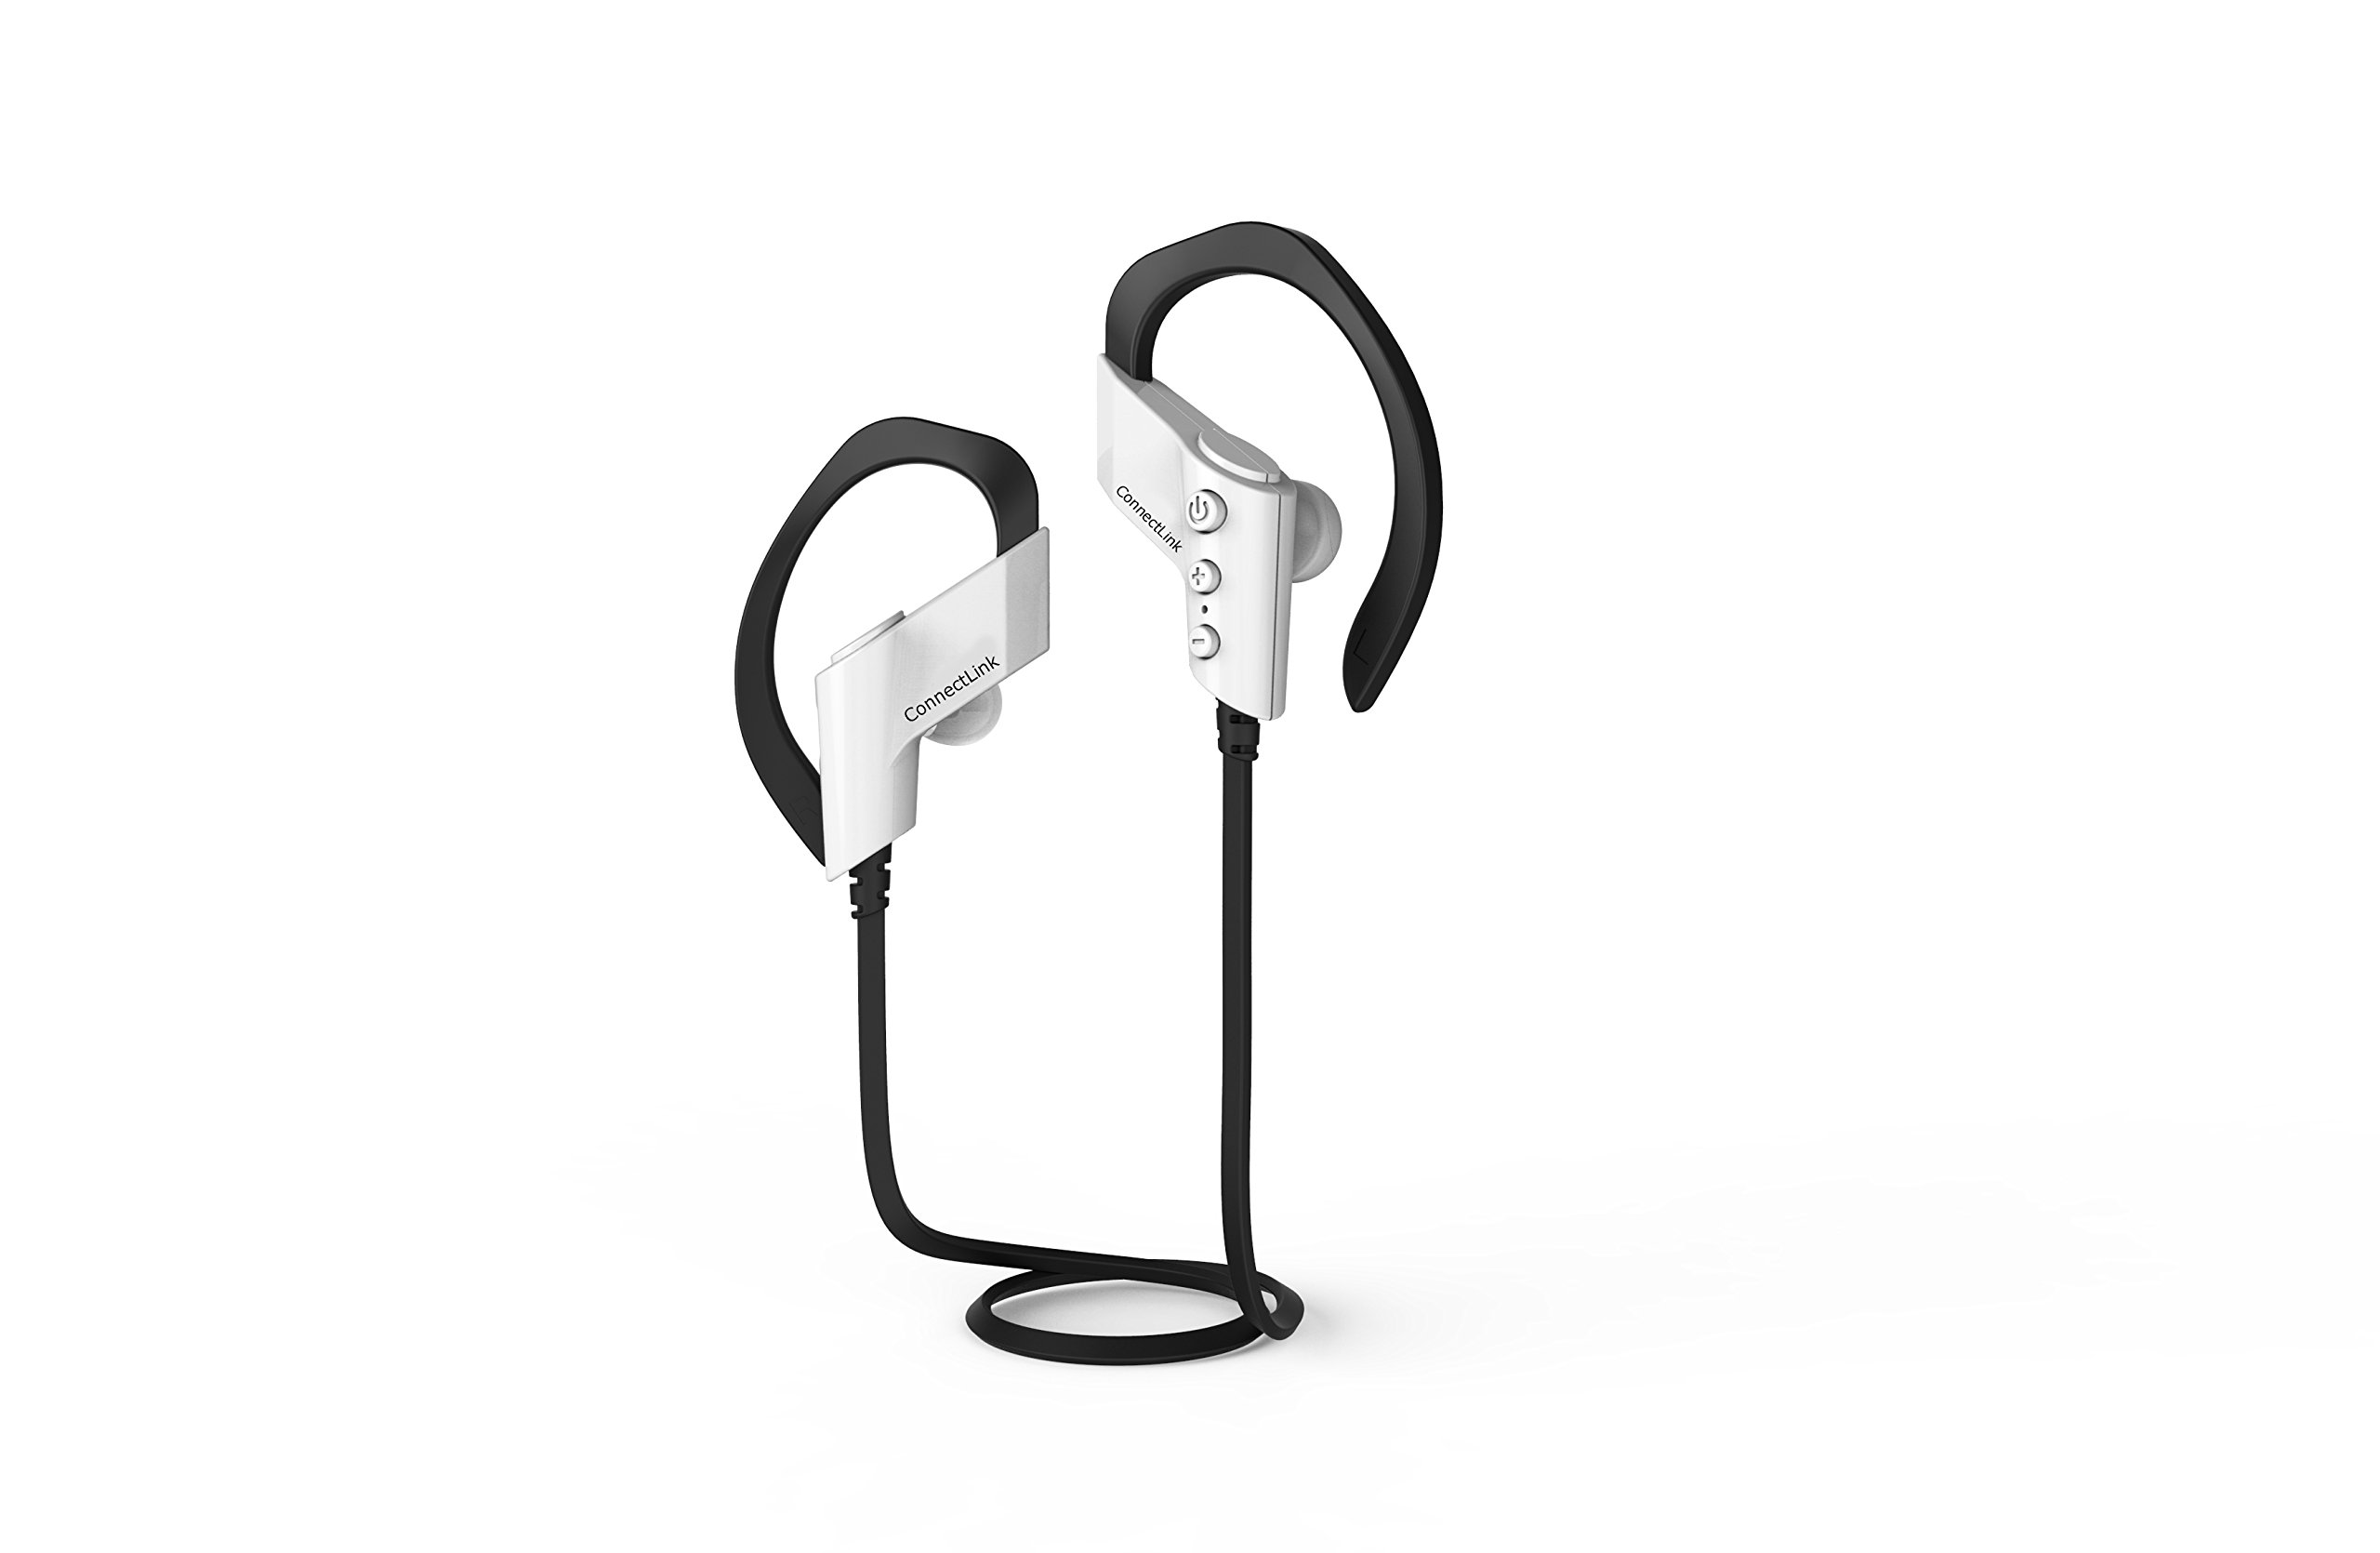 ConnectLink Bluetooth Headset Sport Headphone Portable Earphone Wireless Stereo Outdoor Running Headphones Headsets w/Microphone White